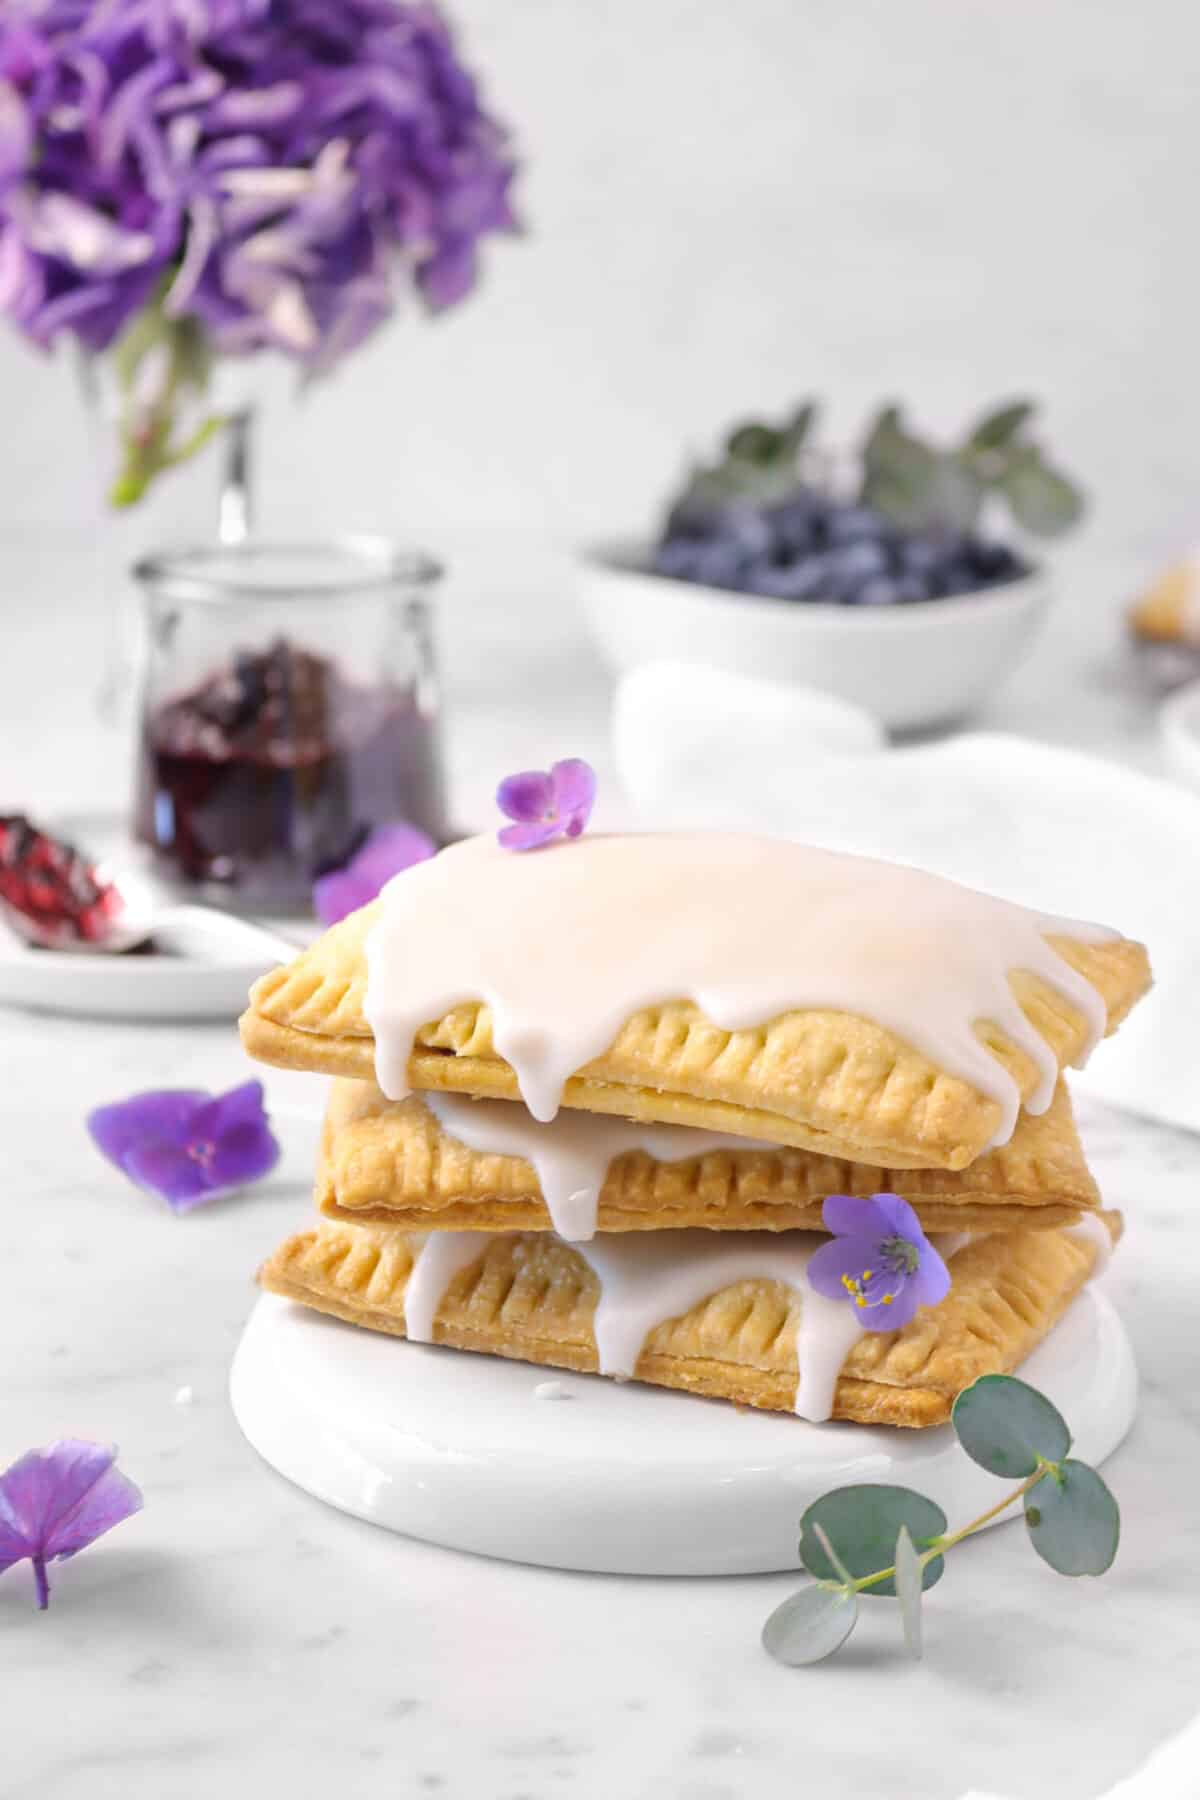 pop tarts stacked with flowers on a white plate, a jar of blueberry jam, a messy spoon, and a bowl of blueberries